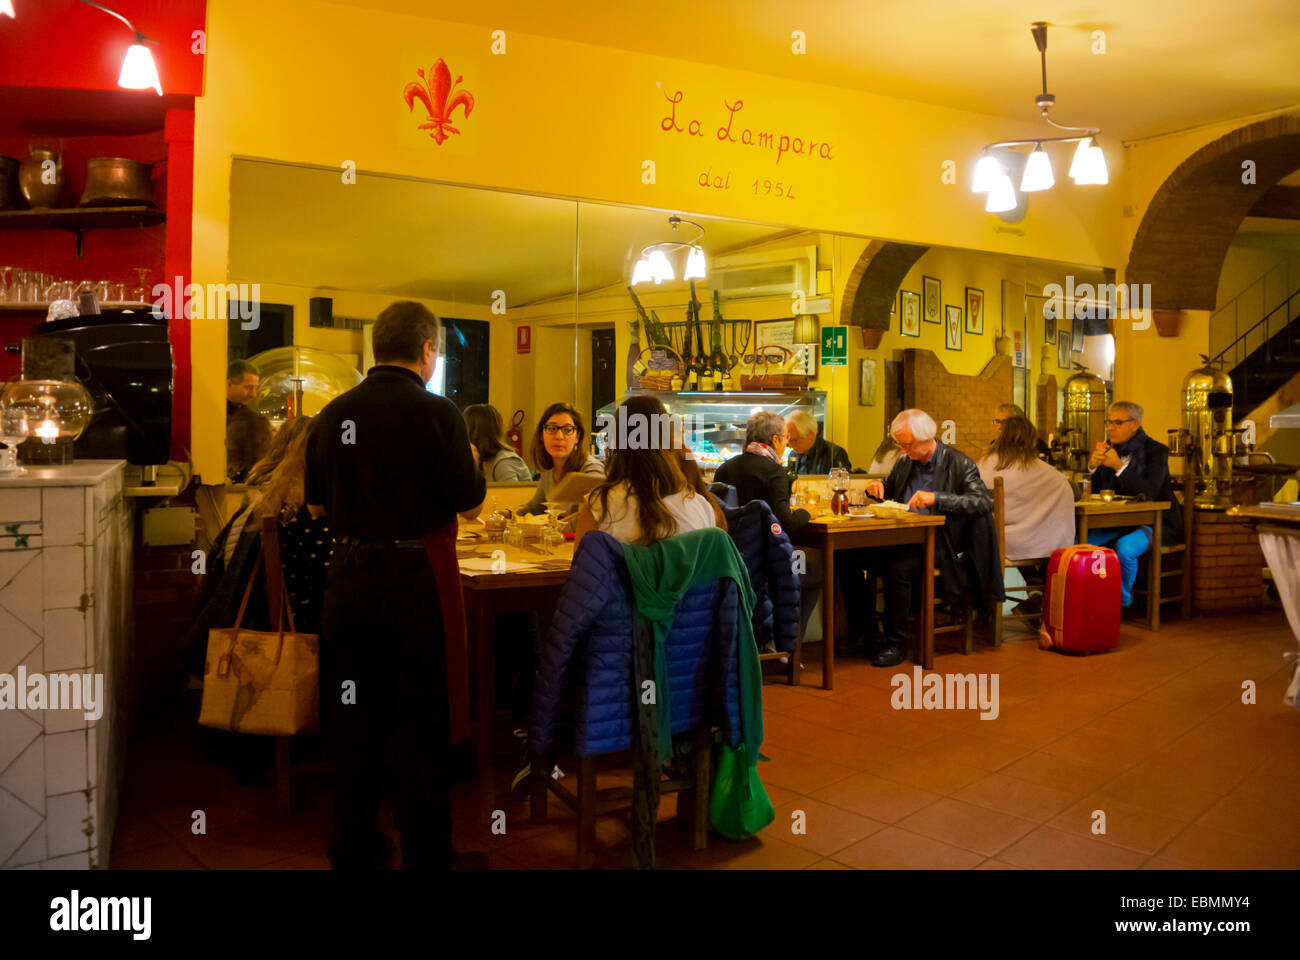 Traditional La Lampara pizzeria, central Florence, Tuscany, Italy - Stock Image